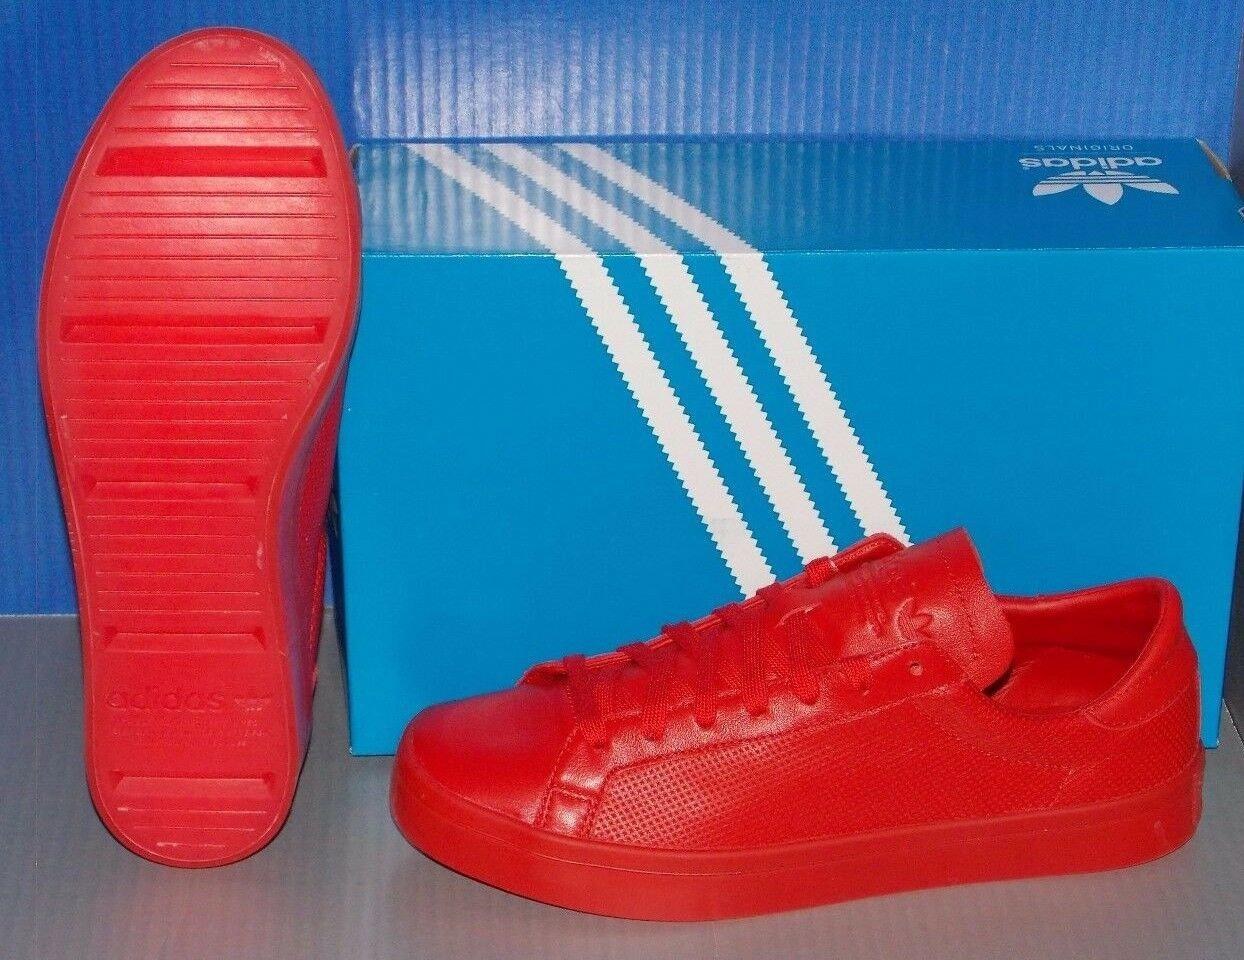 MENS ADIDAS COURTVANTAGE COURTVANTAGE COURTVANTAGE ADICOLOR in colors RED   RED   RED SIZE 9 8b8186